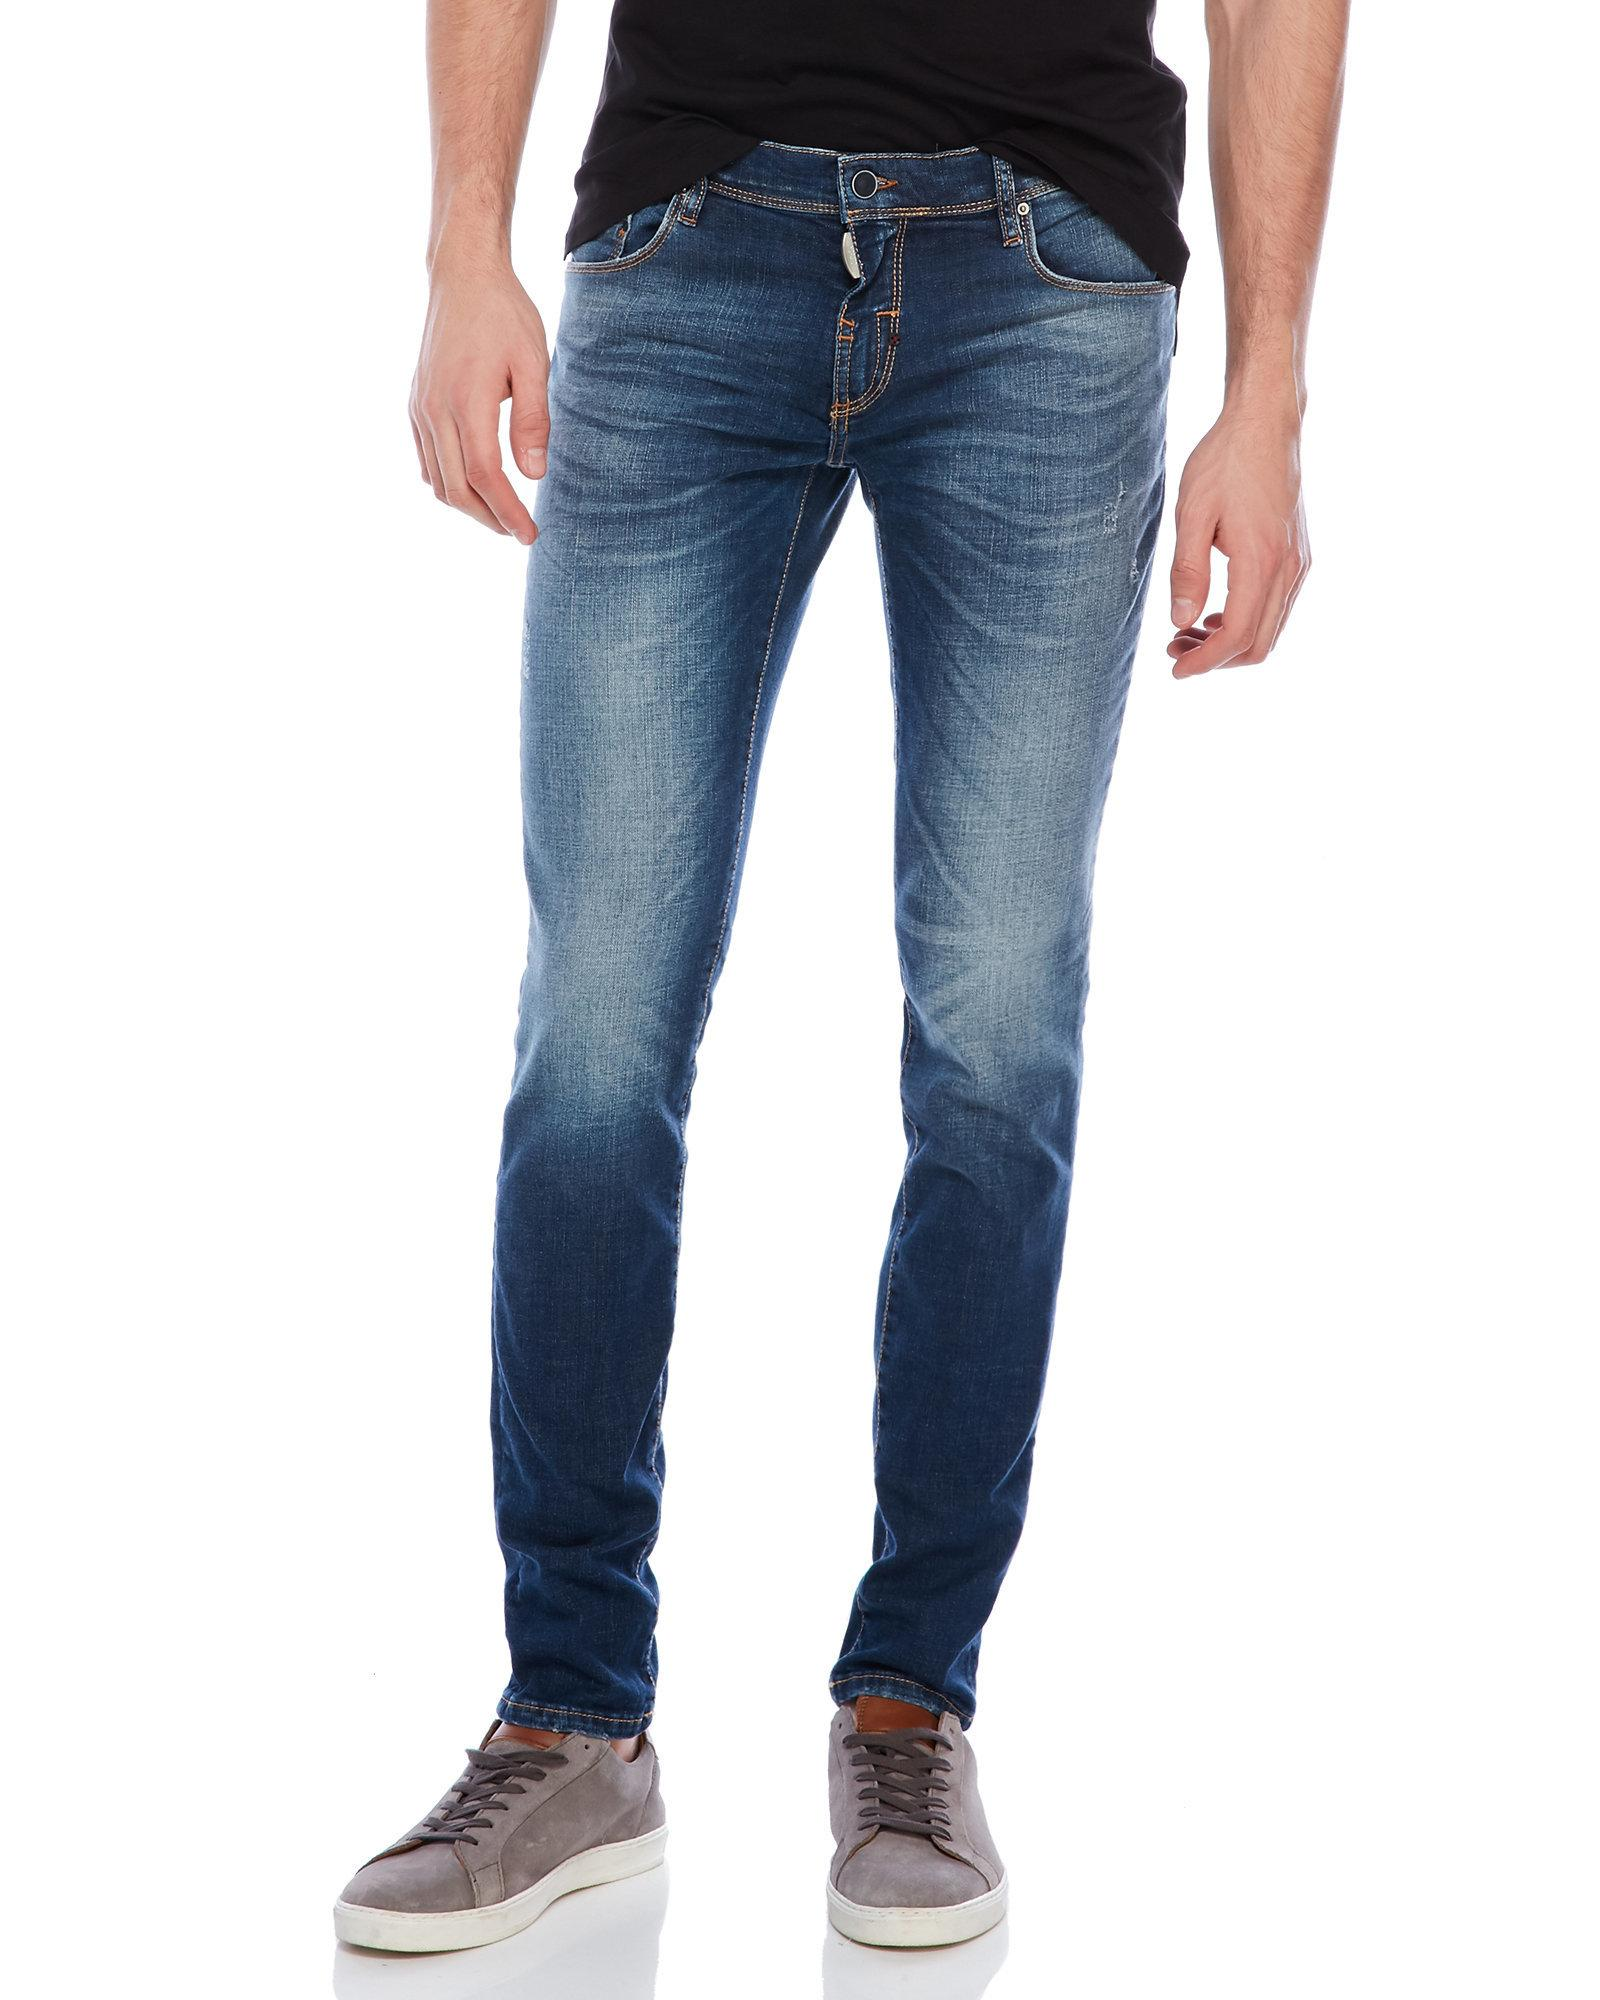 Lyst - Antony Morato Mick Super Skinny Jeans in Blue for Men 49b69c3137b